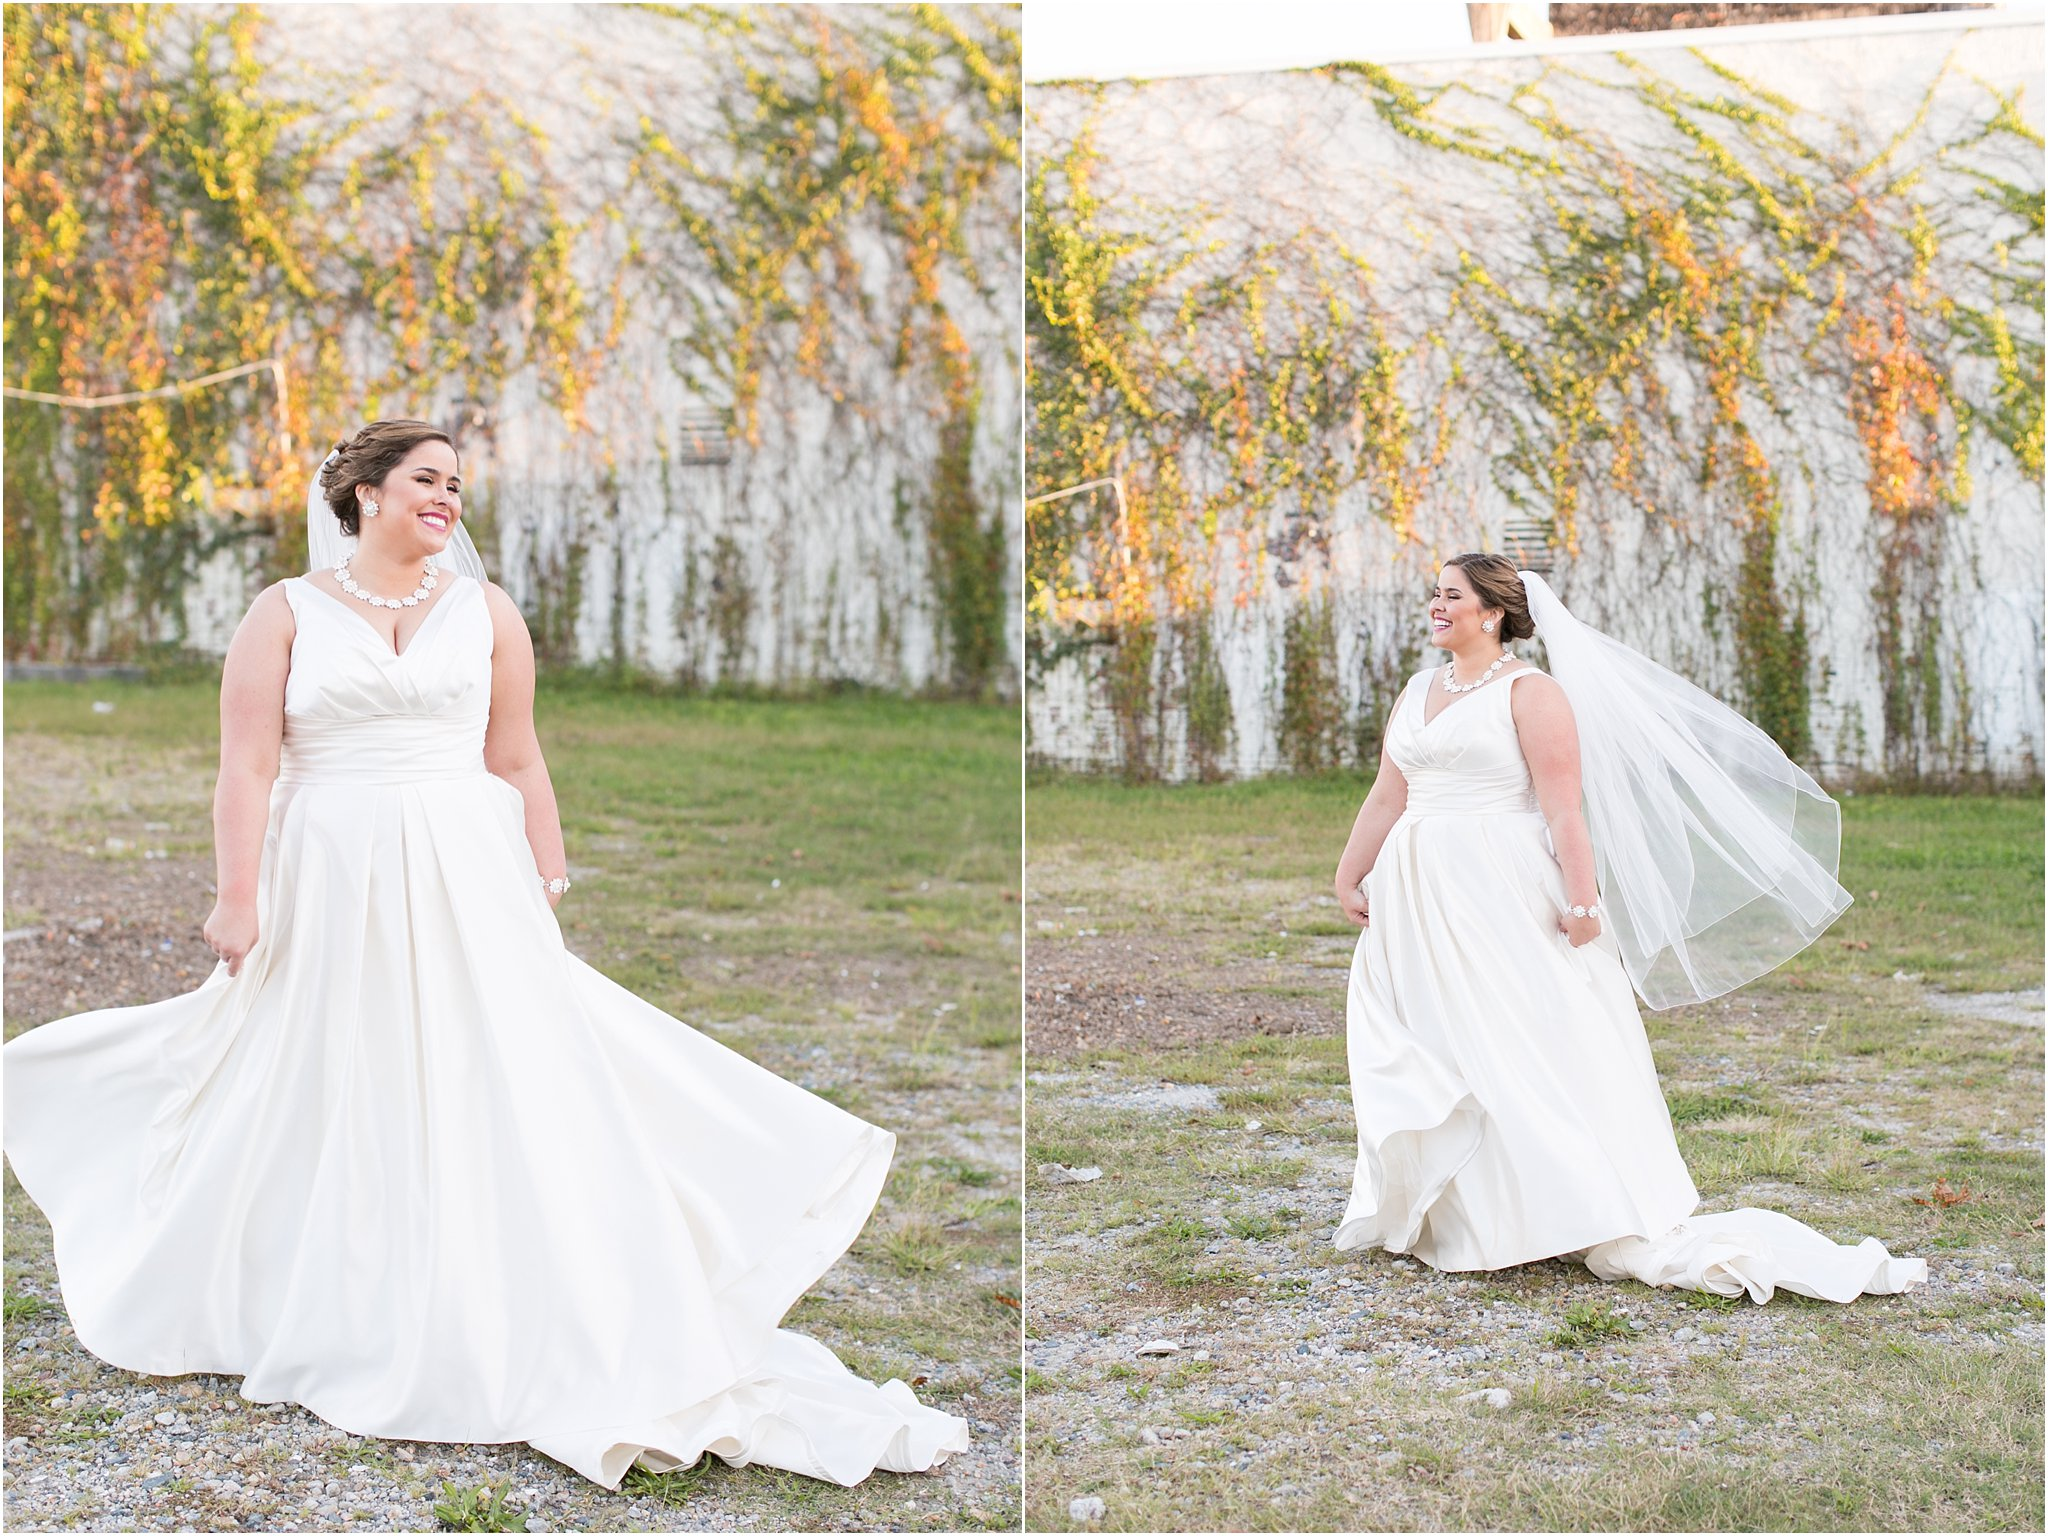 va_jessica_ryan_photography_virginia_wedding_norfolk_harrison_opera_house_norfolk_arts_district_portraits_3824